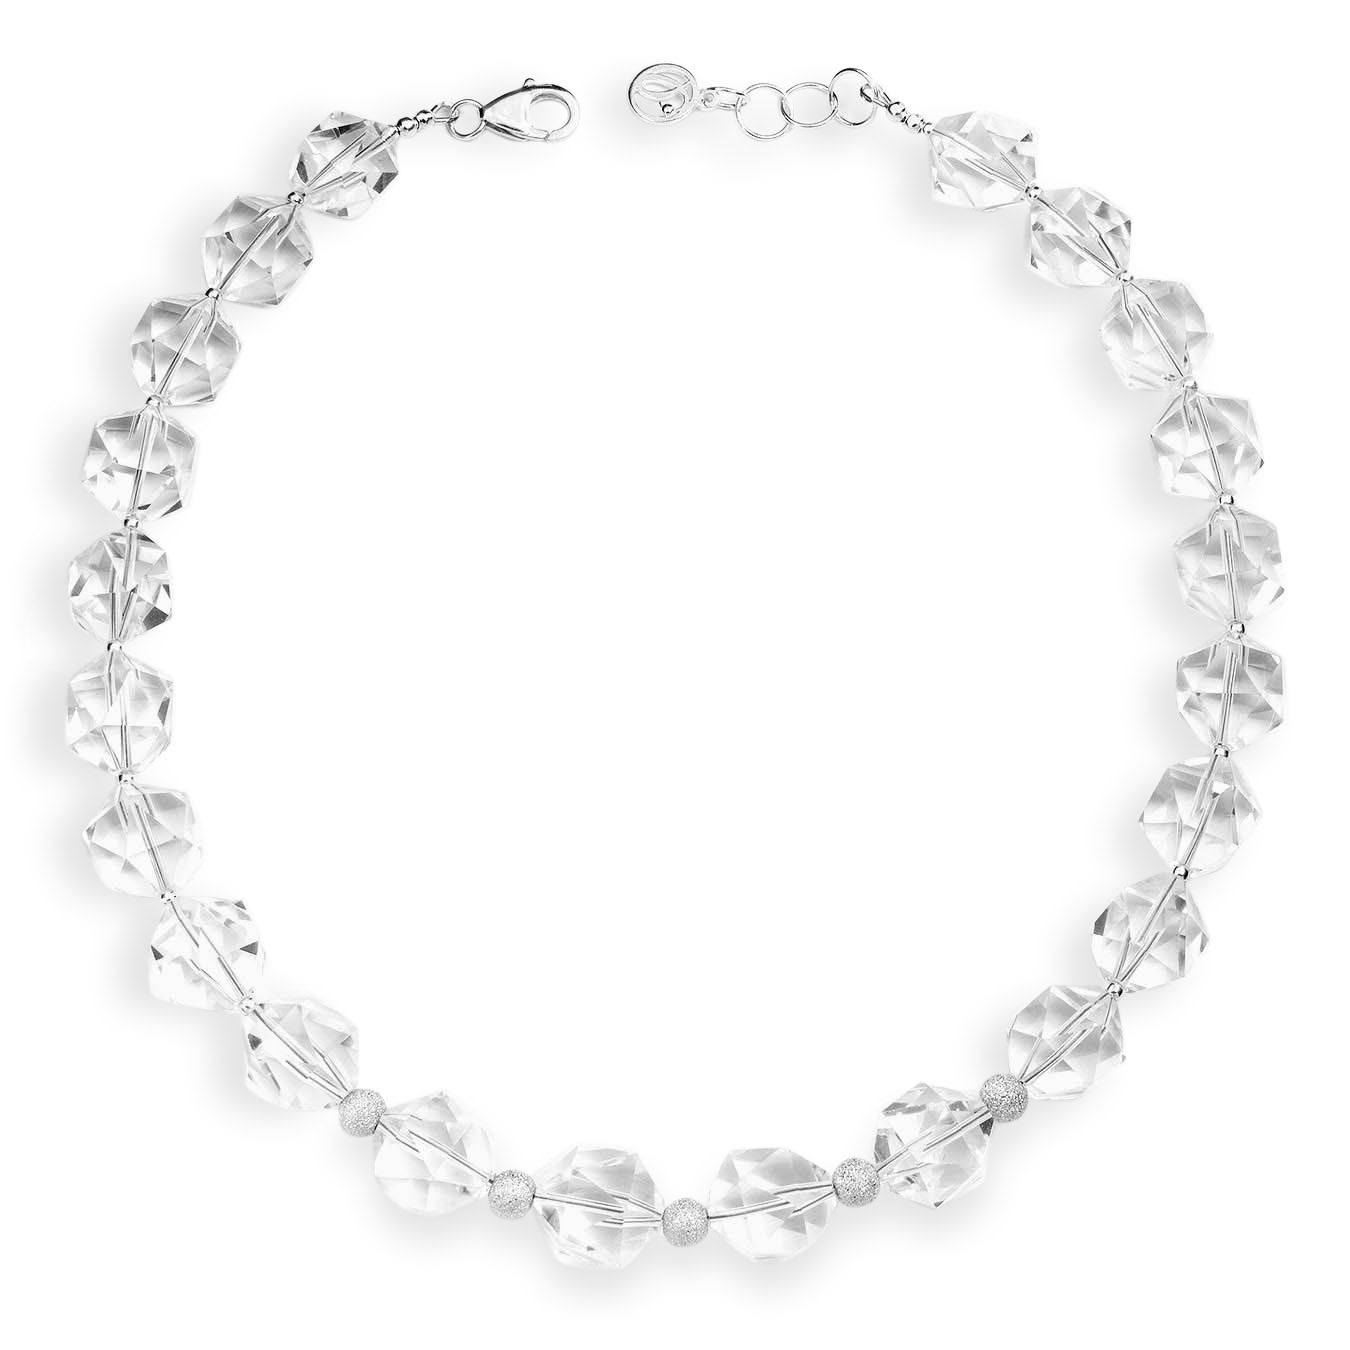 Choker style necklace made of clear quartz and stardust silver beads